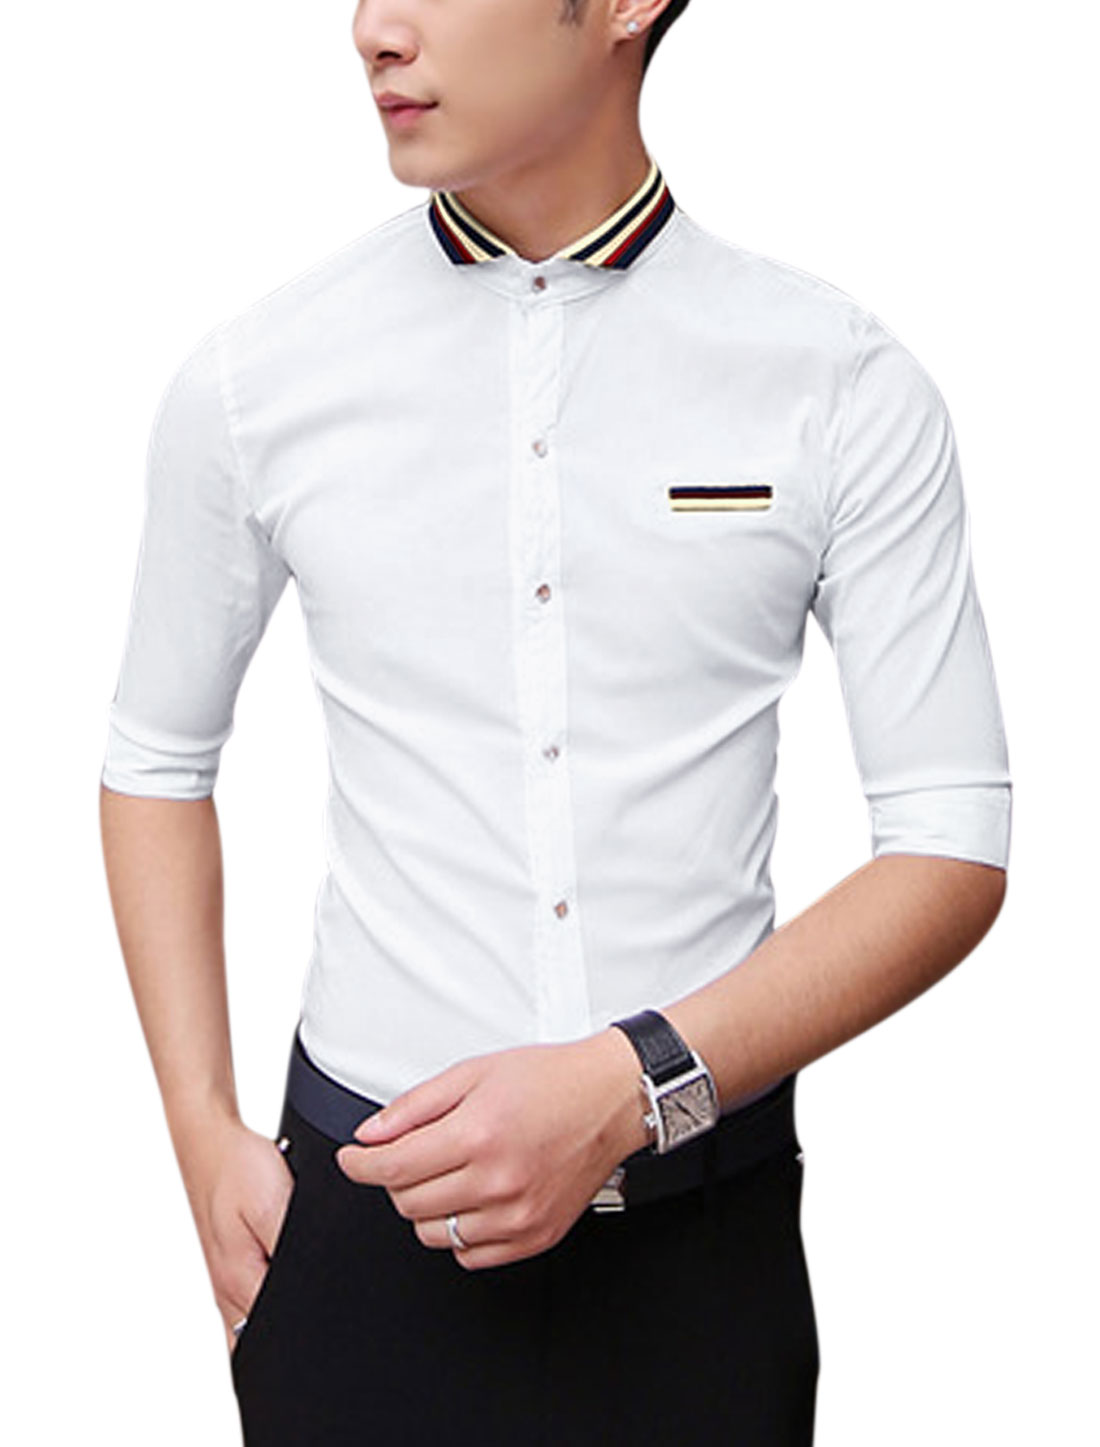 Men Elbow Sleeve Button Up Slim Fit Summer Shirts White S